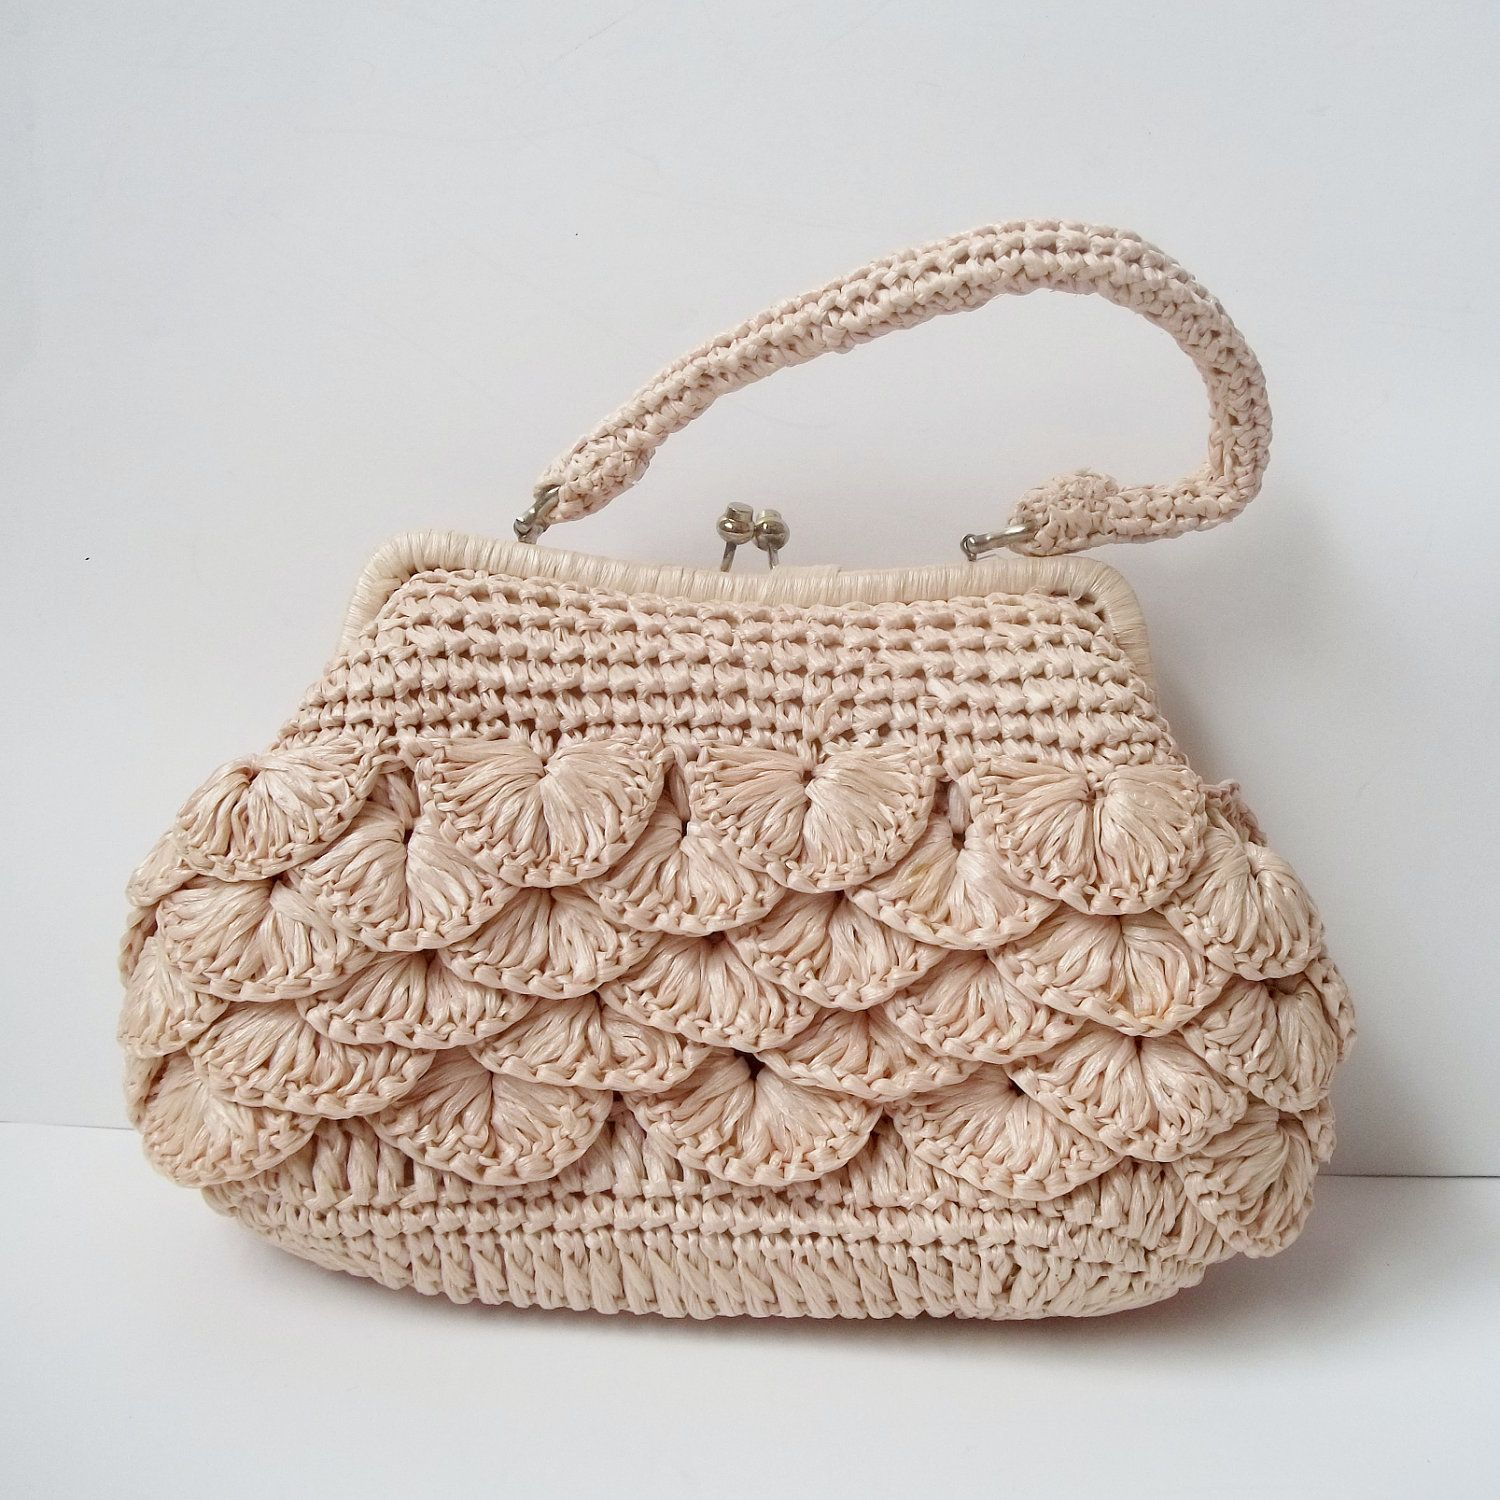 27a54edbdab Vintage 1960s Mantessa Cream Raffia Crochet Frame Handbag Purse ...